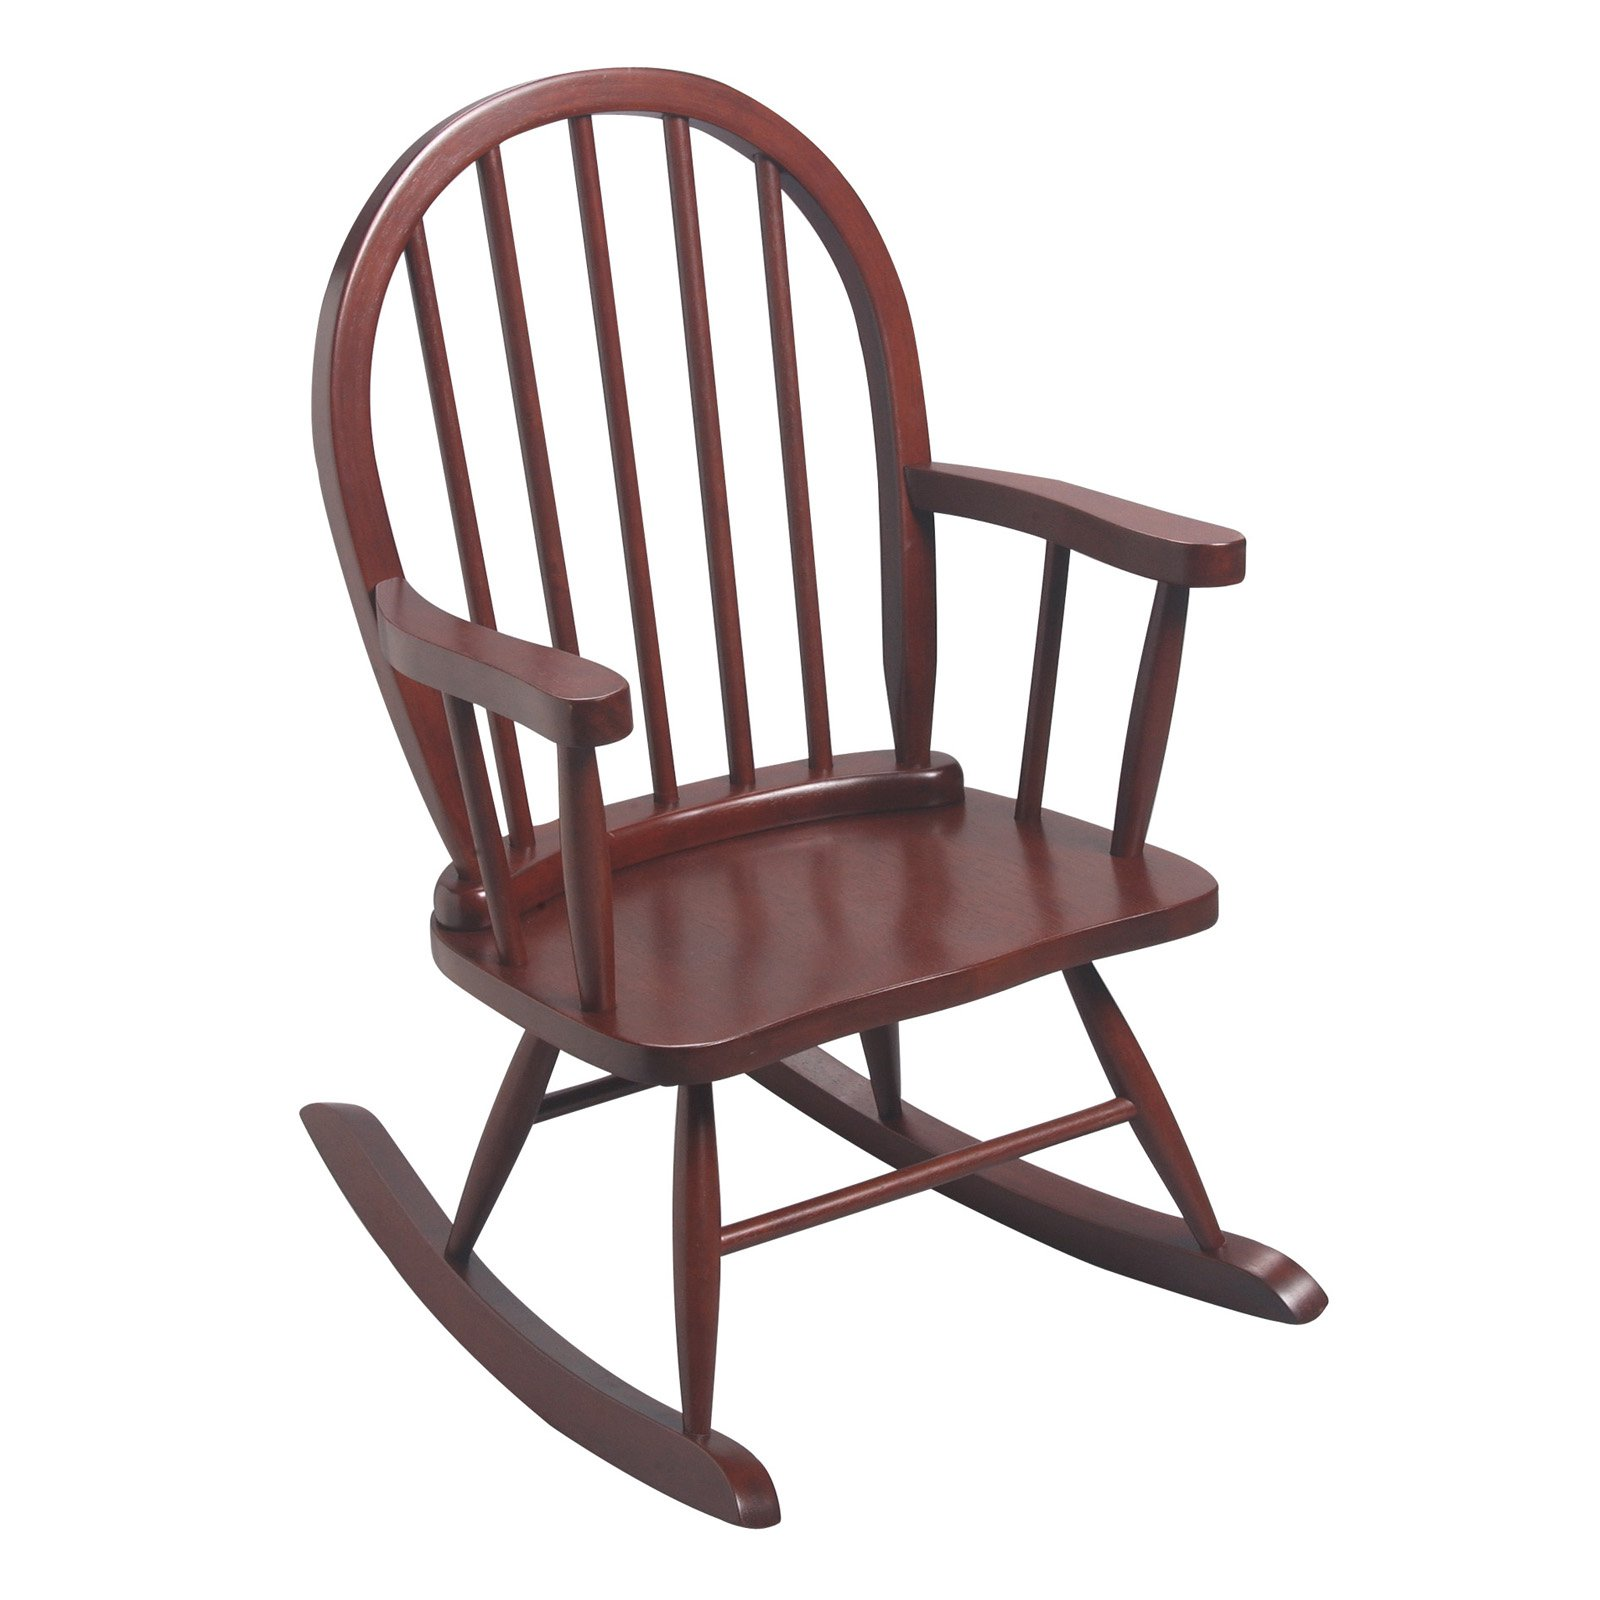 Gift Mark Windsor Childrens 3600 Rocking Chair Cherry